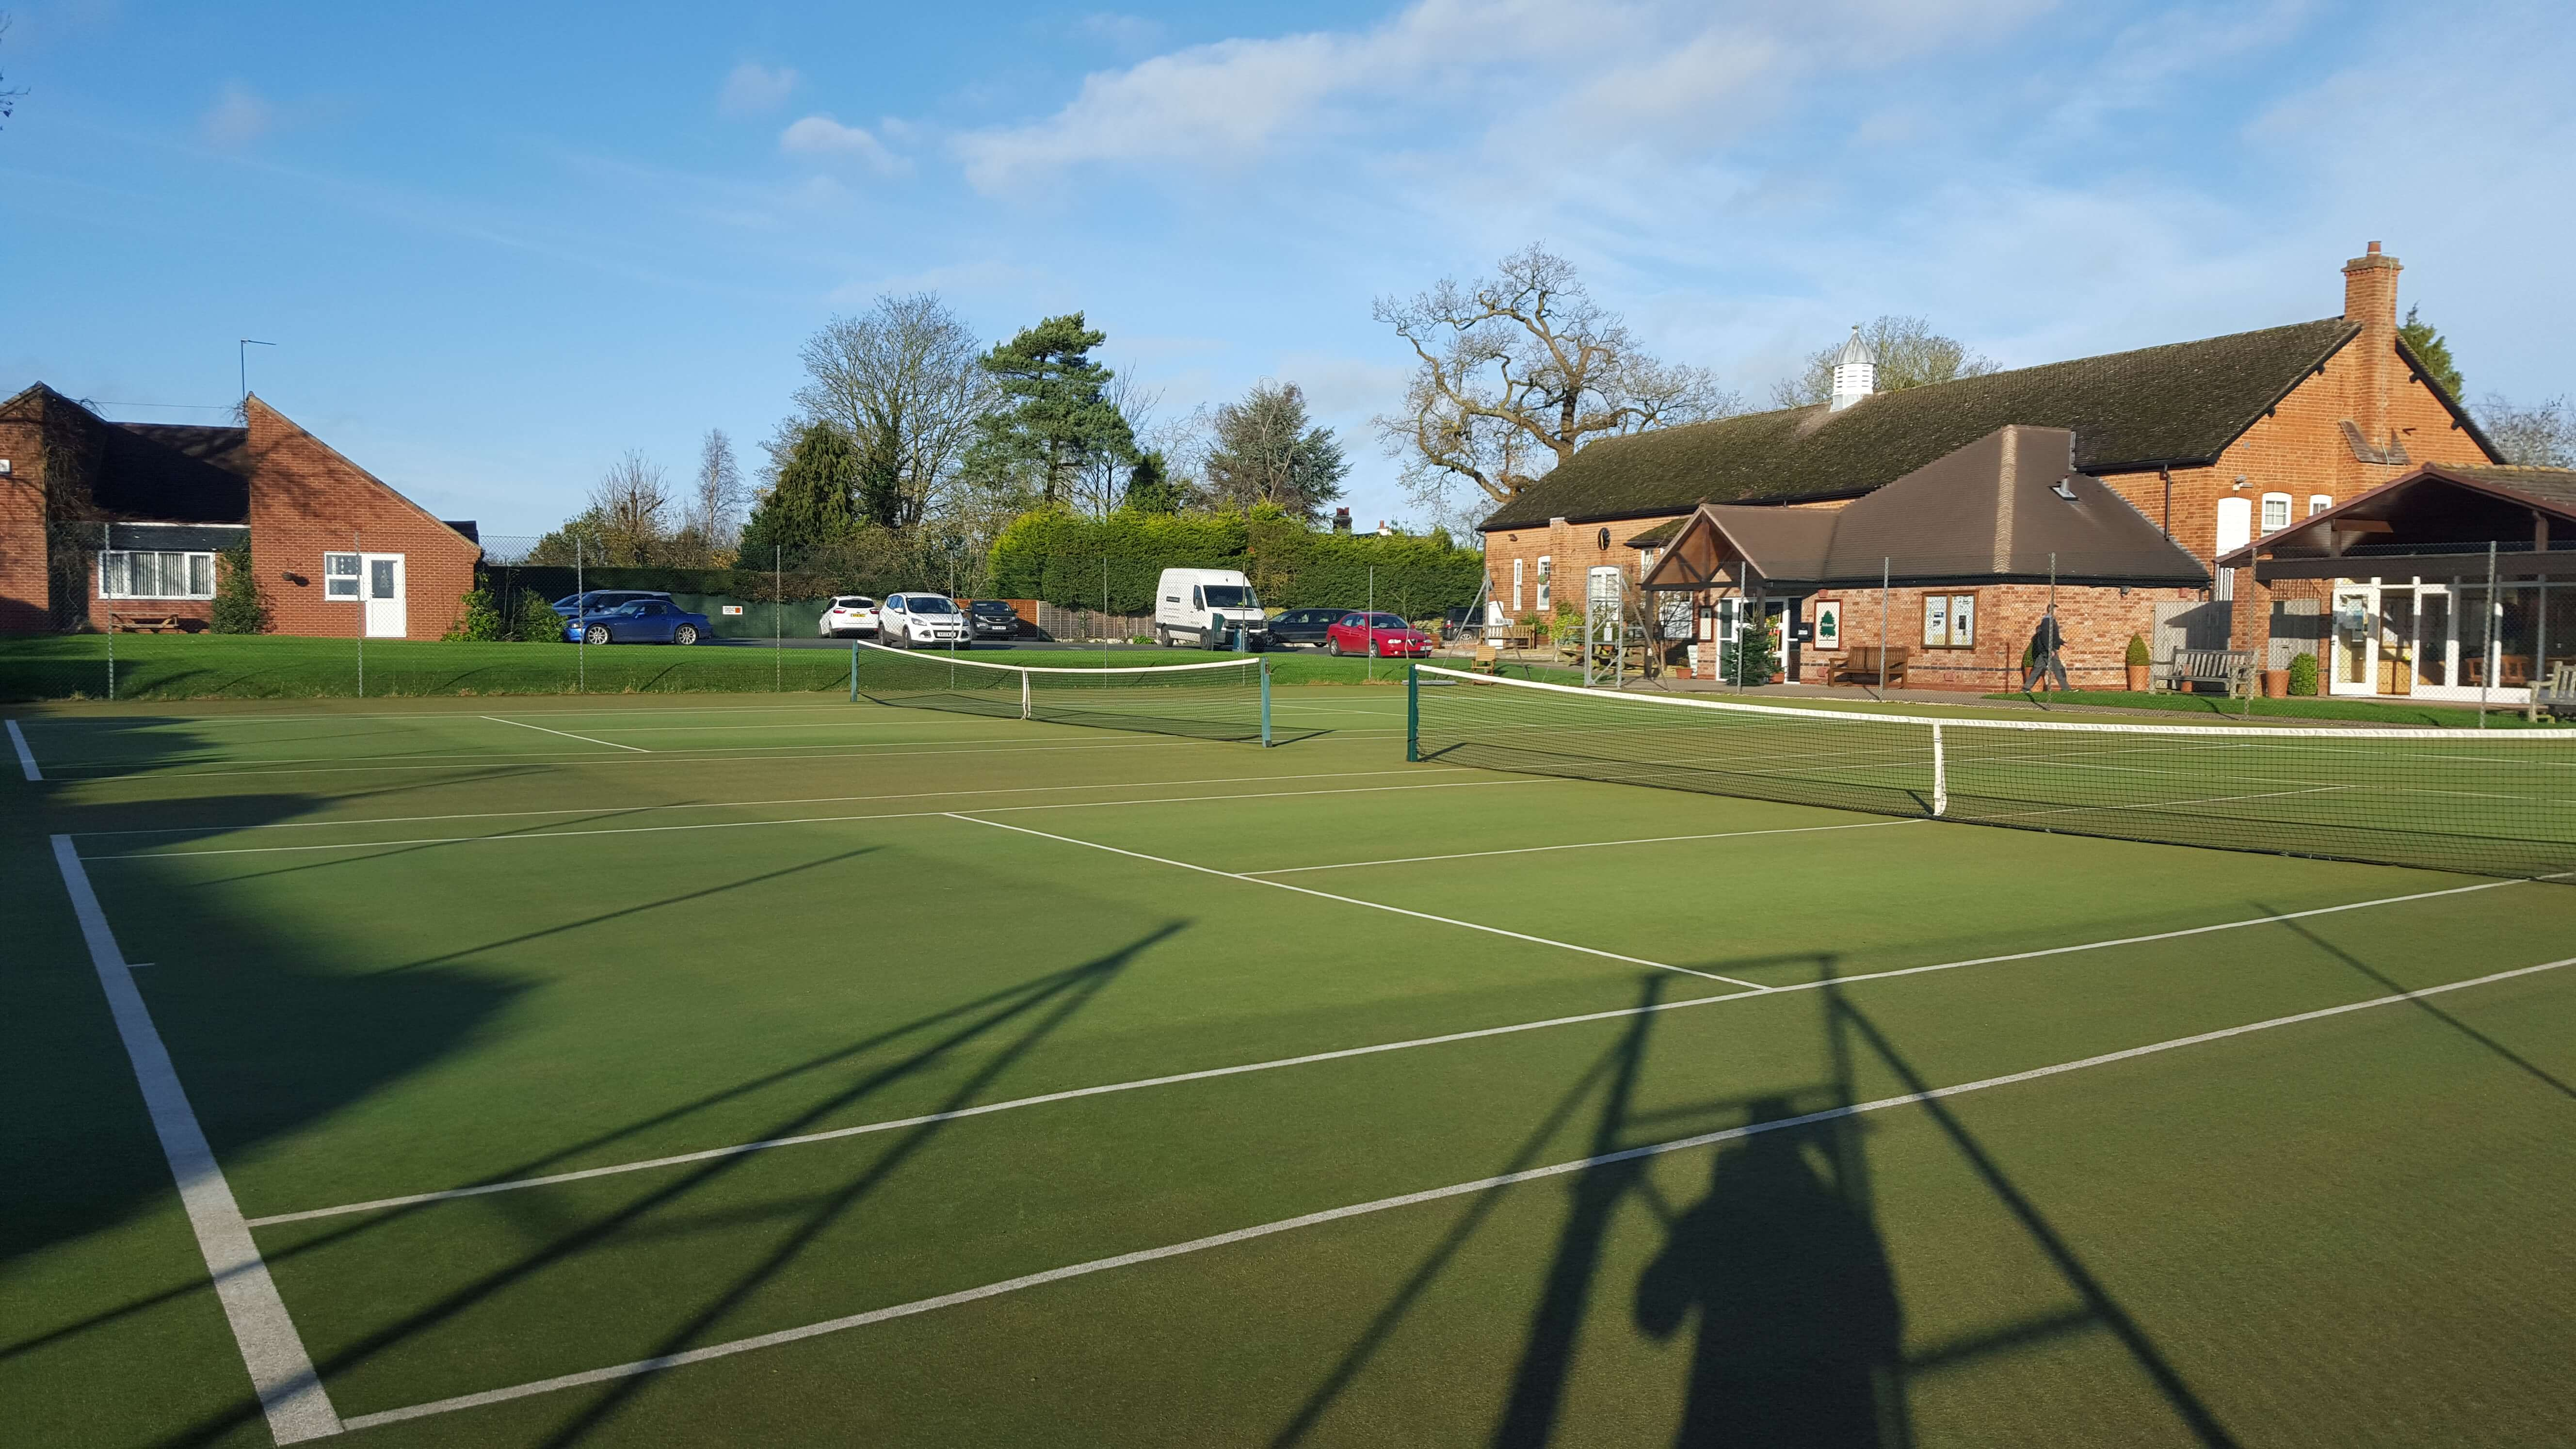 David Corrall – Claverdon Lawn Tennis Club